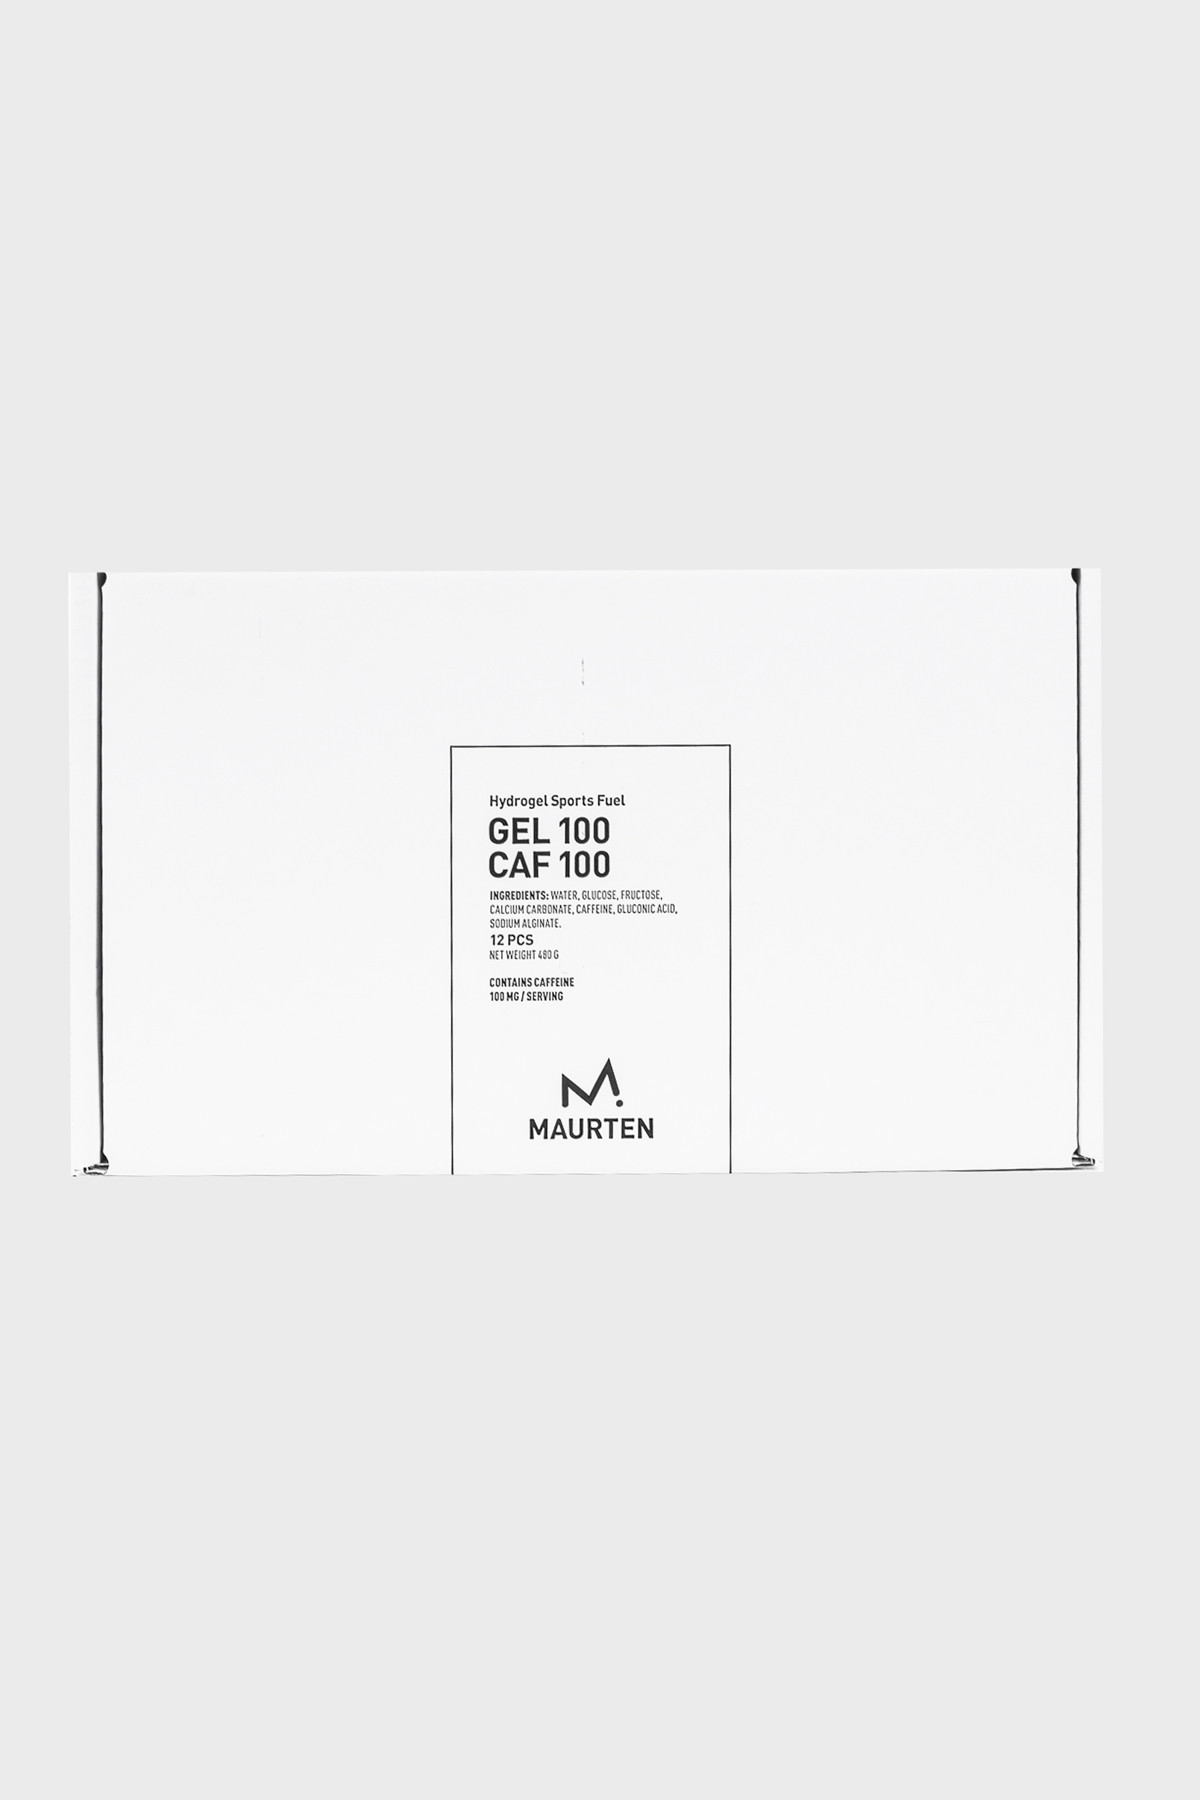 Maurten - Gel 100 Caf 100 - Box